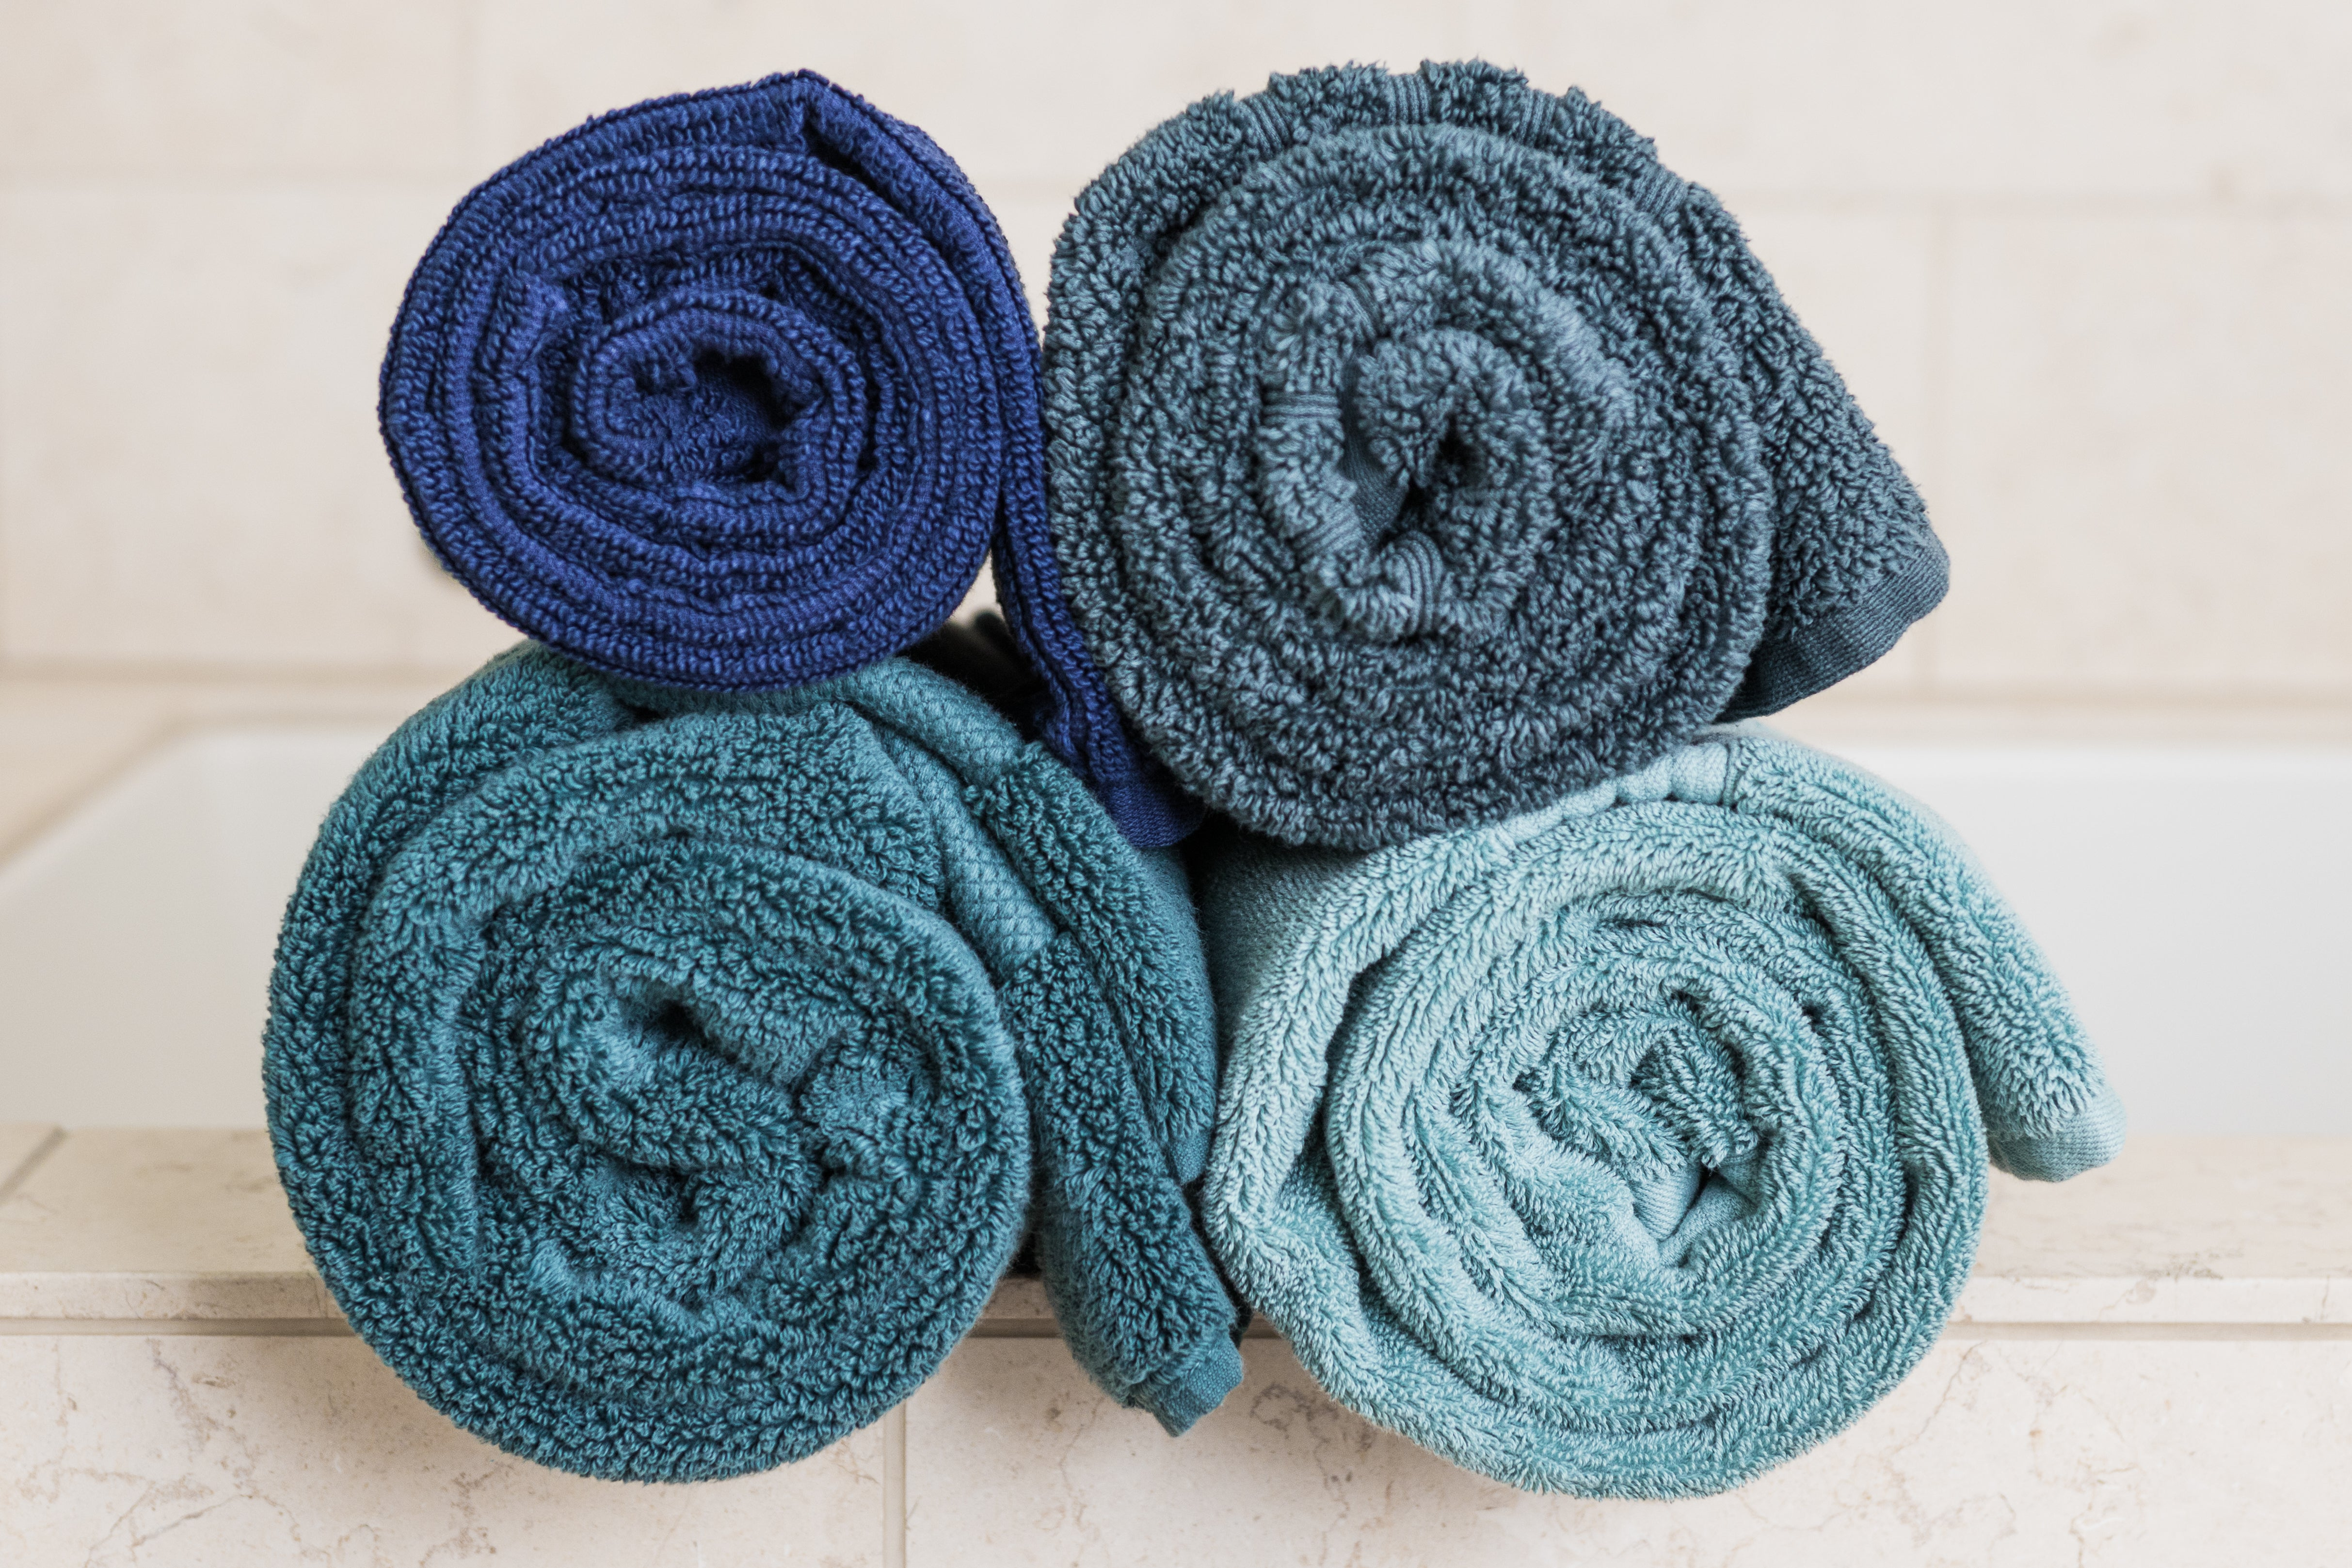 Four rolled up towels